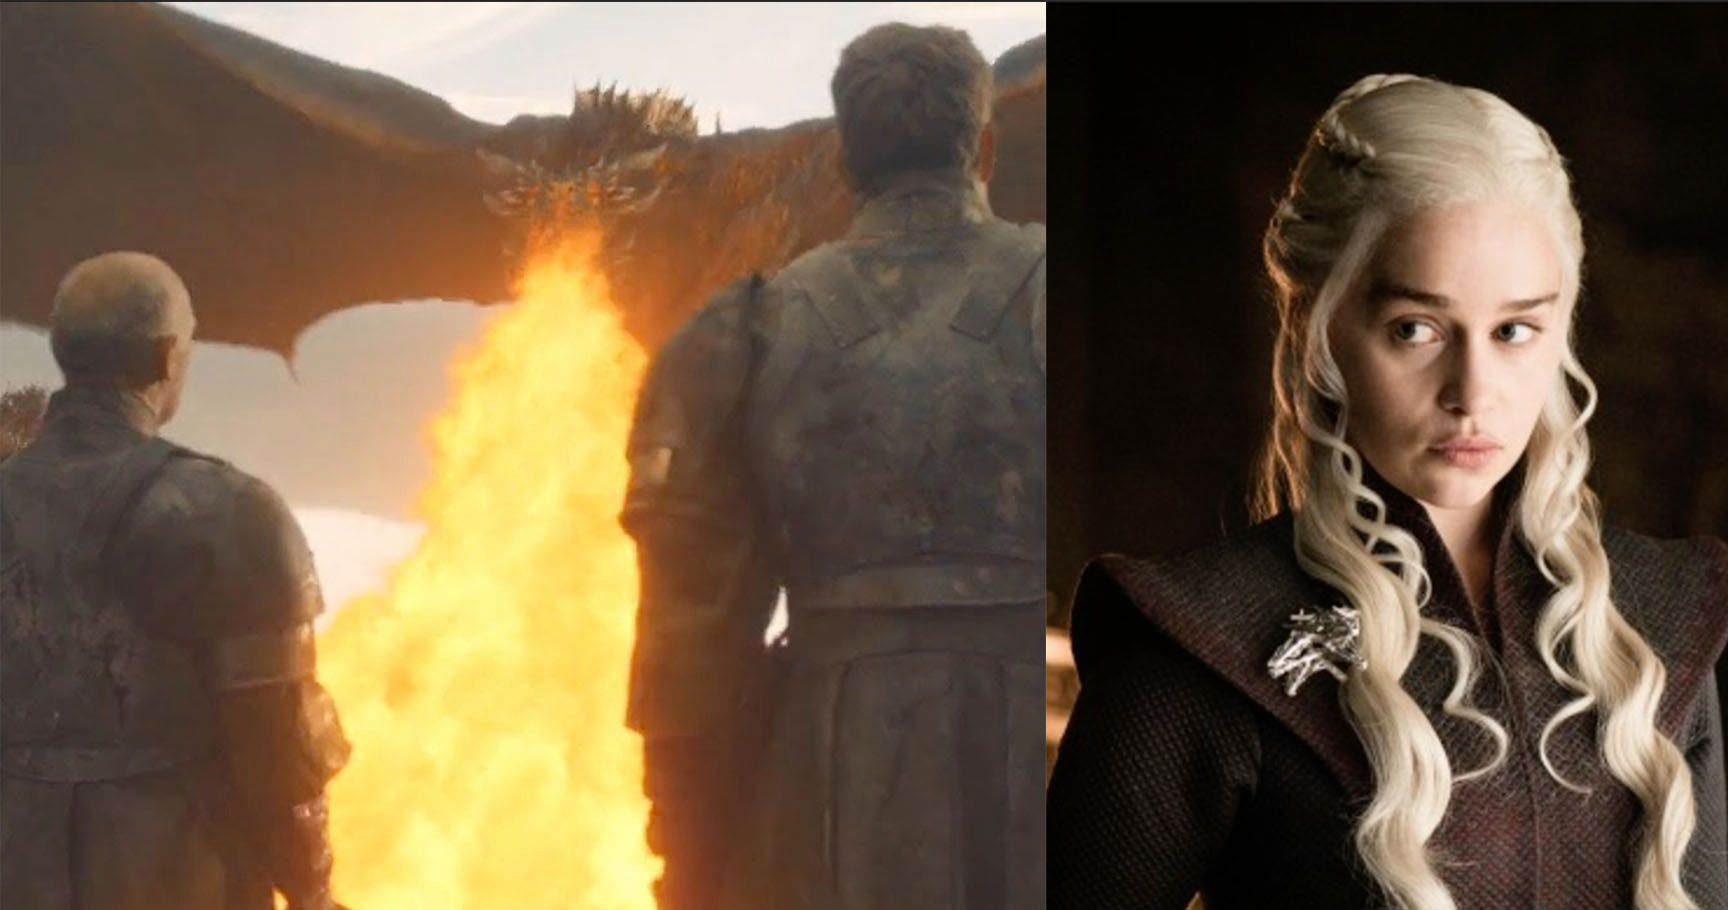 15 Hints From 'Game Of Thrones' That Daenerys Will Become The 'Mad Queen'